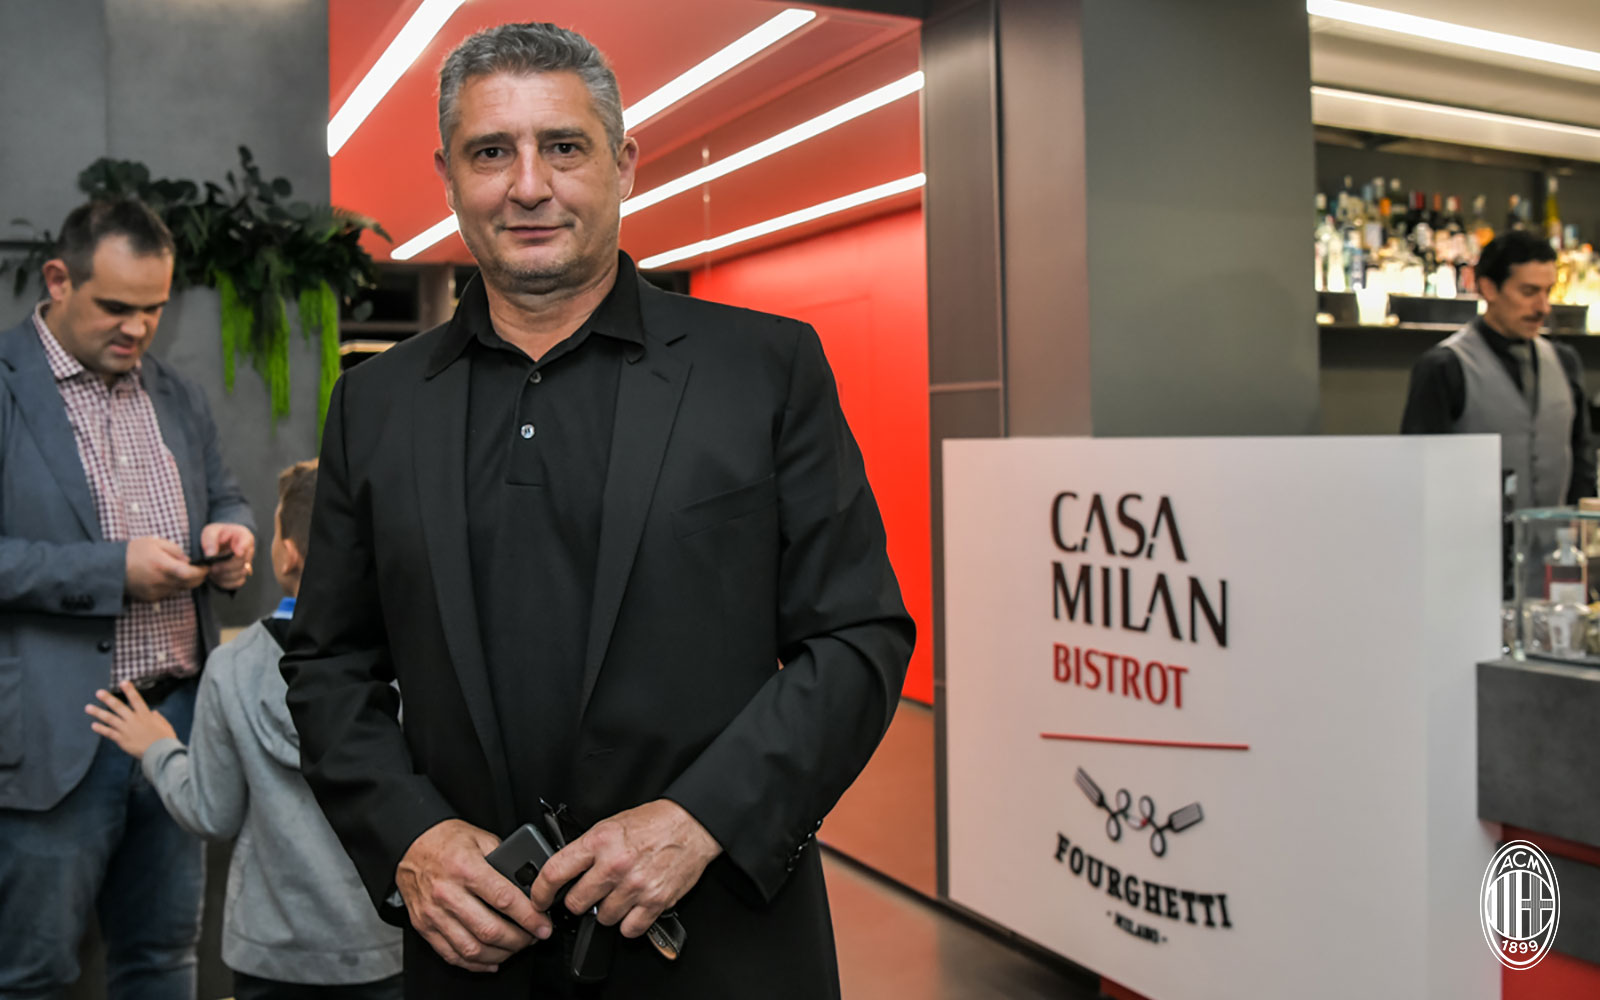 Daniele Massaro at Bistrot Fourghetti at Casa Milan on May 21, 2018. (@acmilan.com)